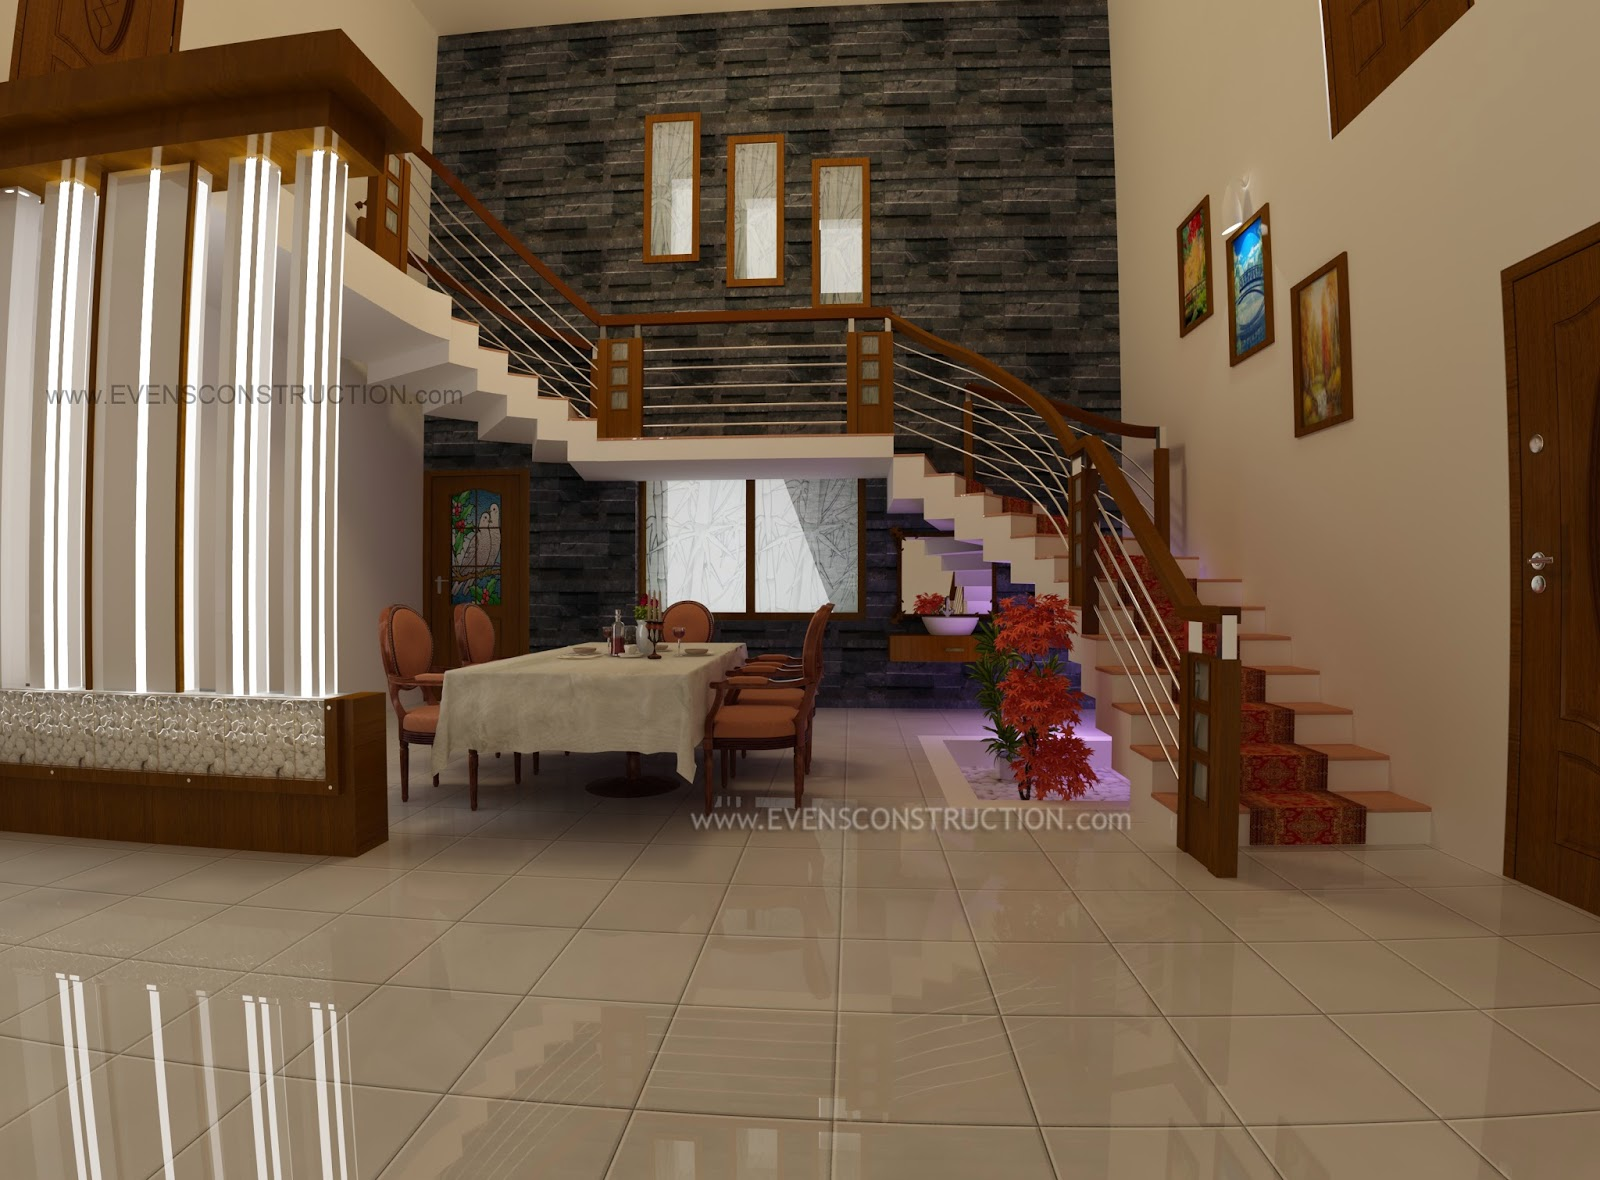 Evens Construction Pvt Ltd Dining And Stair Area